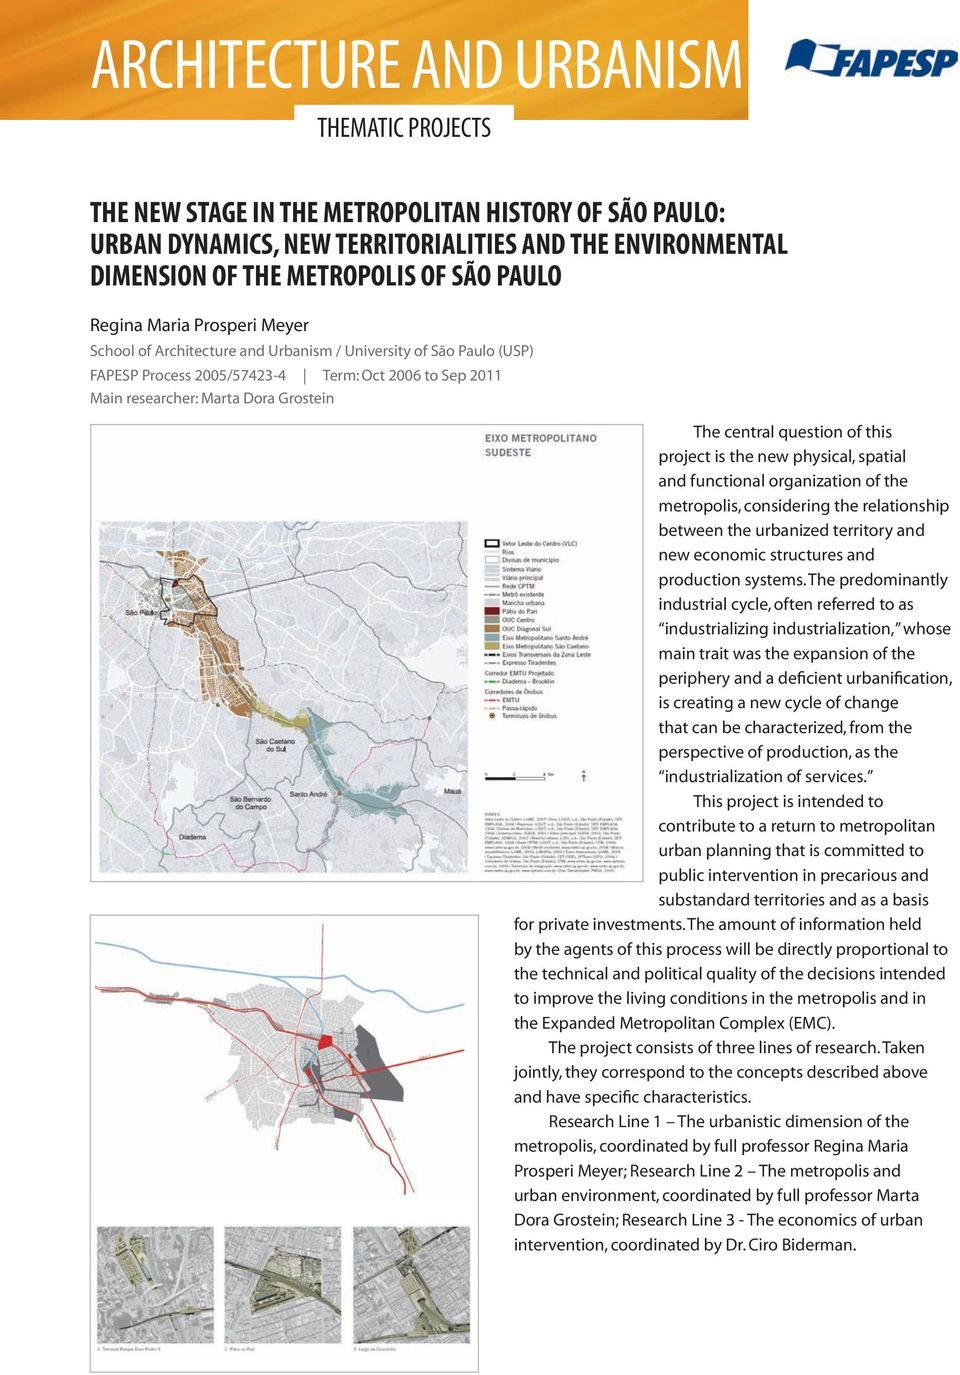 question of this project is the new physical, spatial and functional organization of the metropolis, considering the relationship between the urbanized territory and new economic structures and